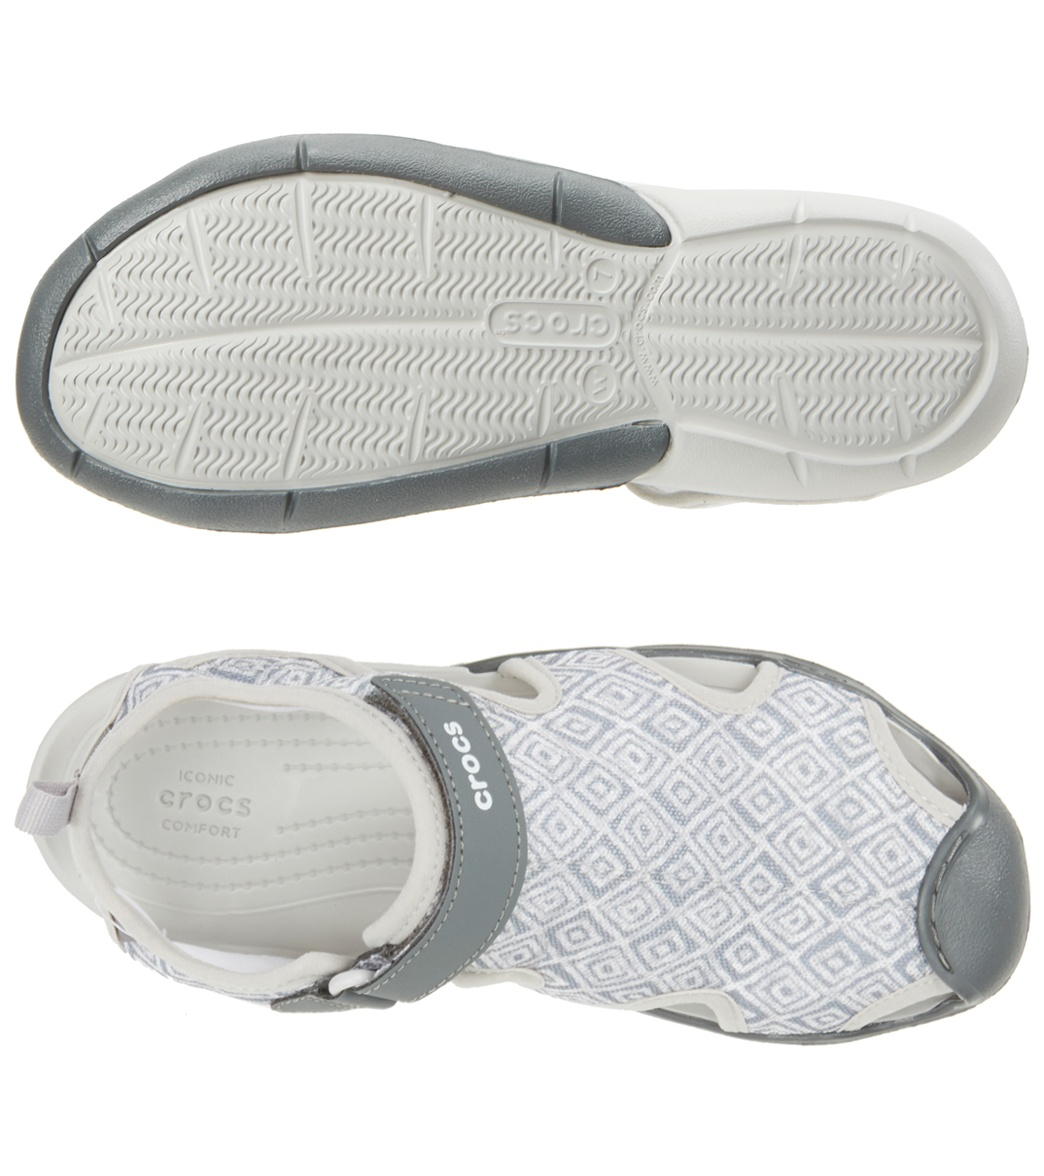 ffe047260a4ea2 Crocs Women s Swiftwater Graphic Mesh Sandal at SwimOutlet.com ...